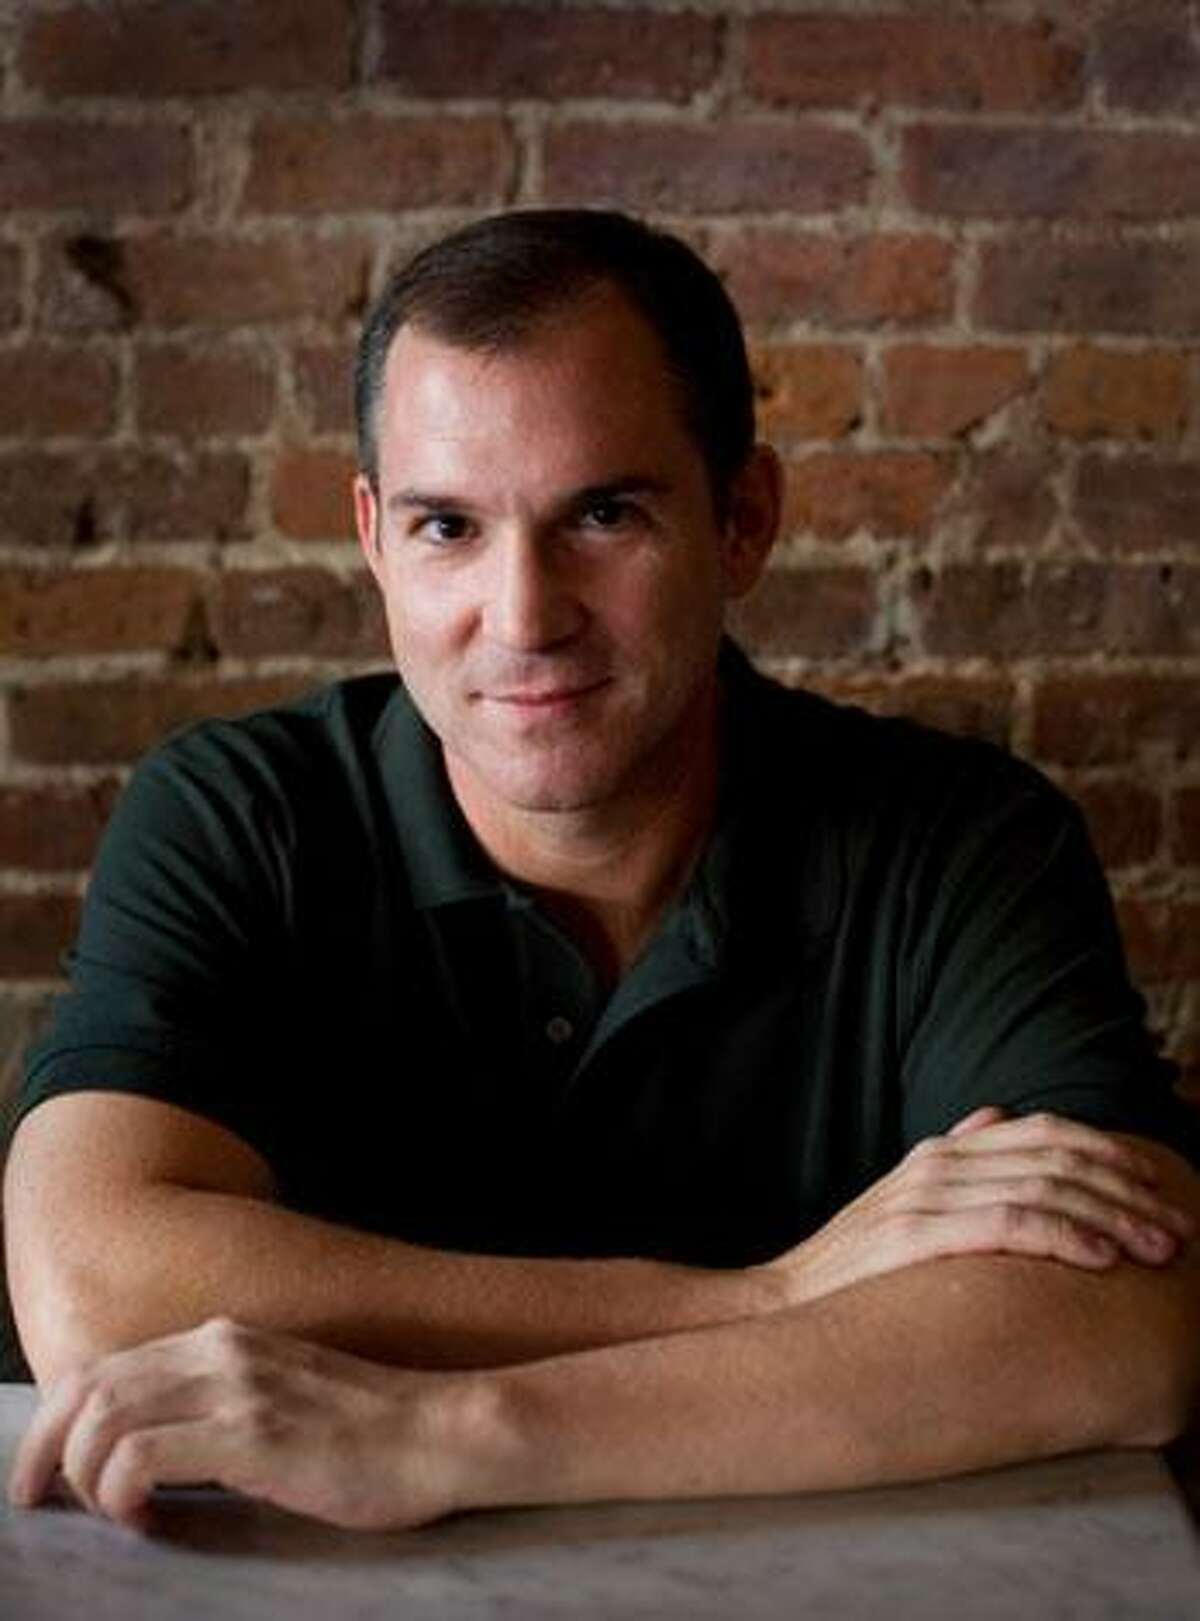 Frank Bruni, the former New York Times food critic, and author of